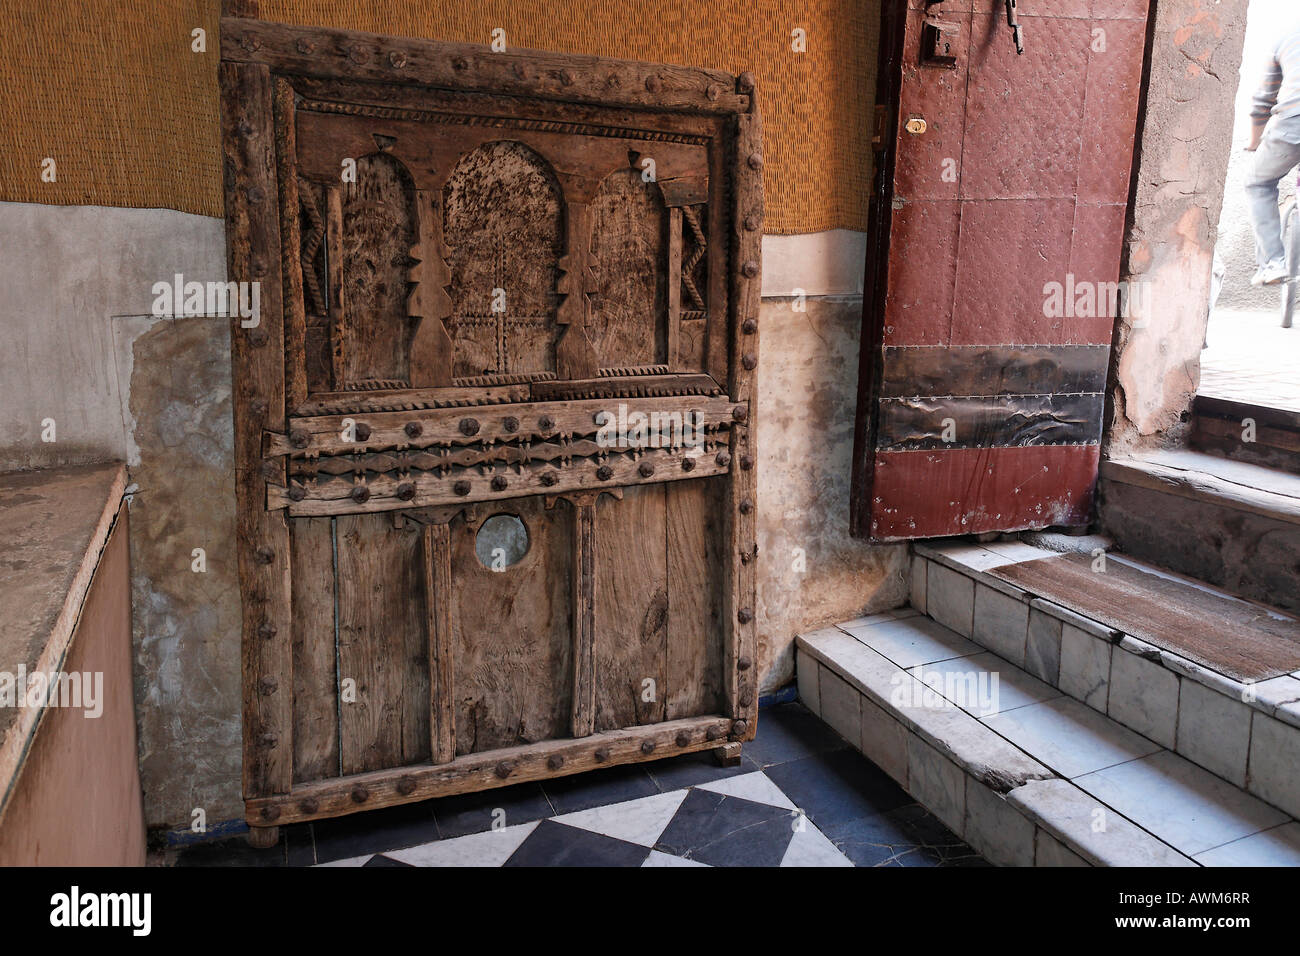 beautiful old wooden door exhibit at maison tiskiwin private museum stock photo royalty free. Black Bedroom Furniture Sets. Home Design Ideas